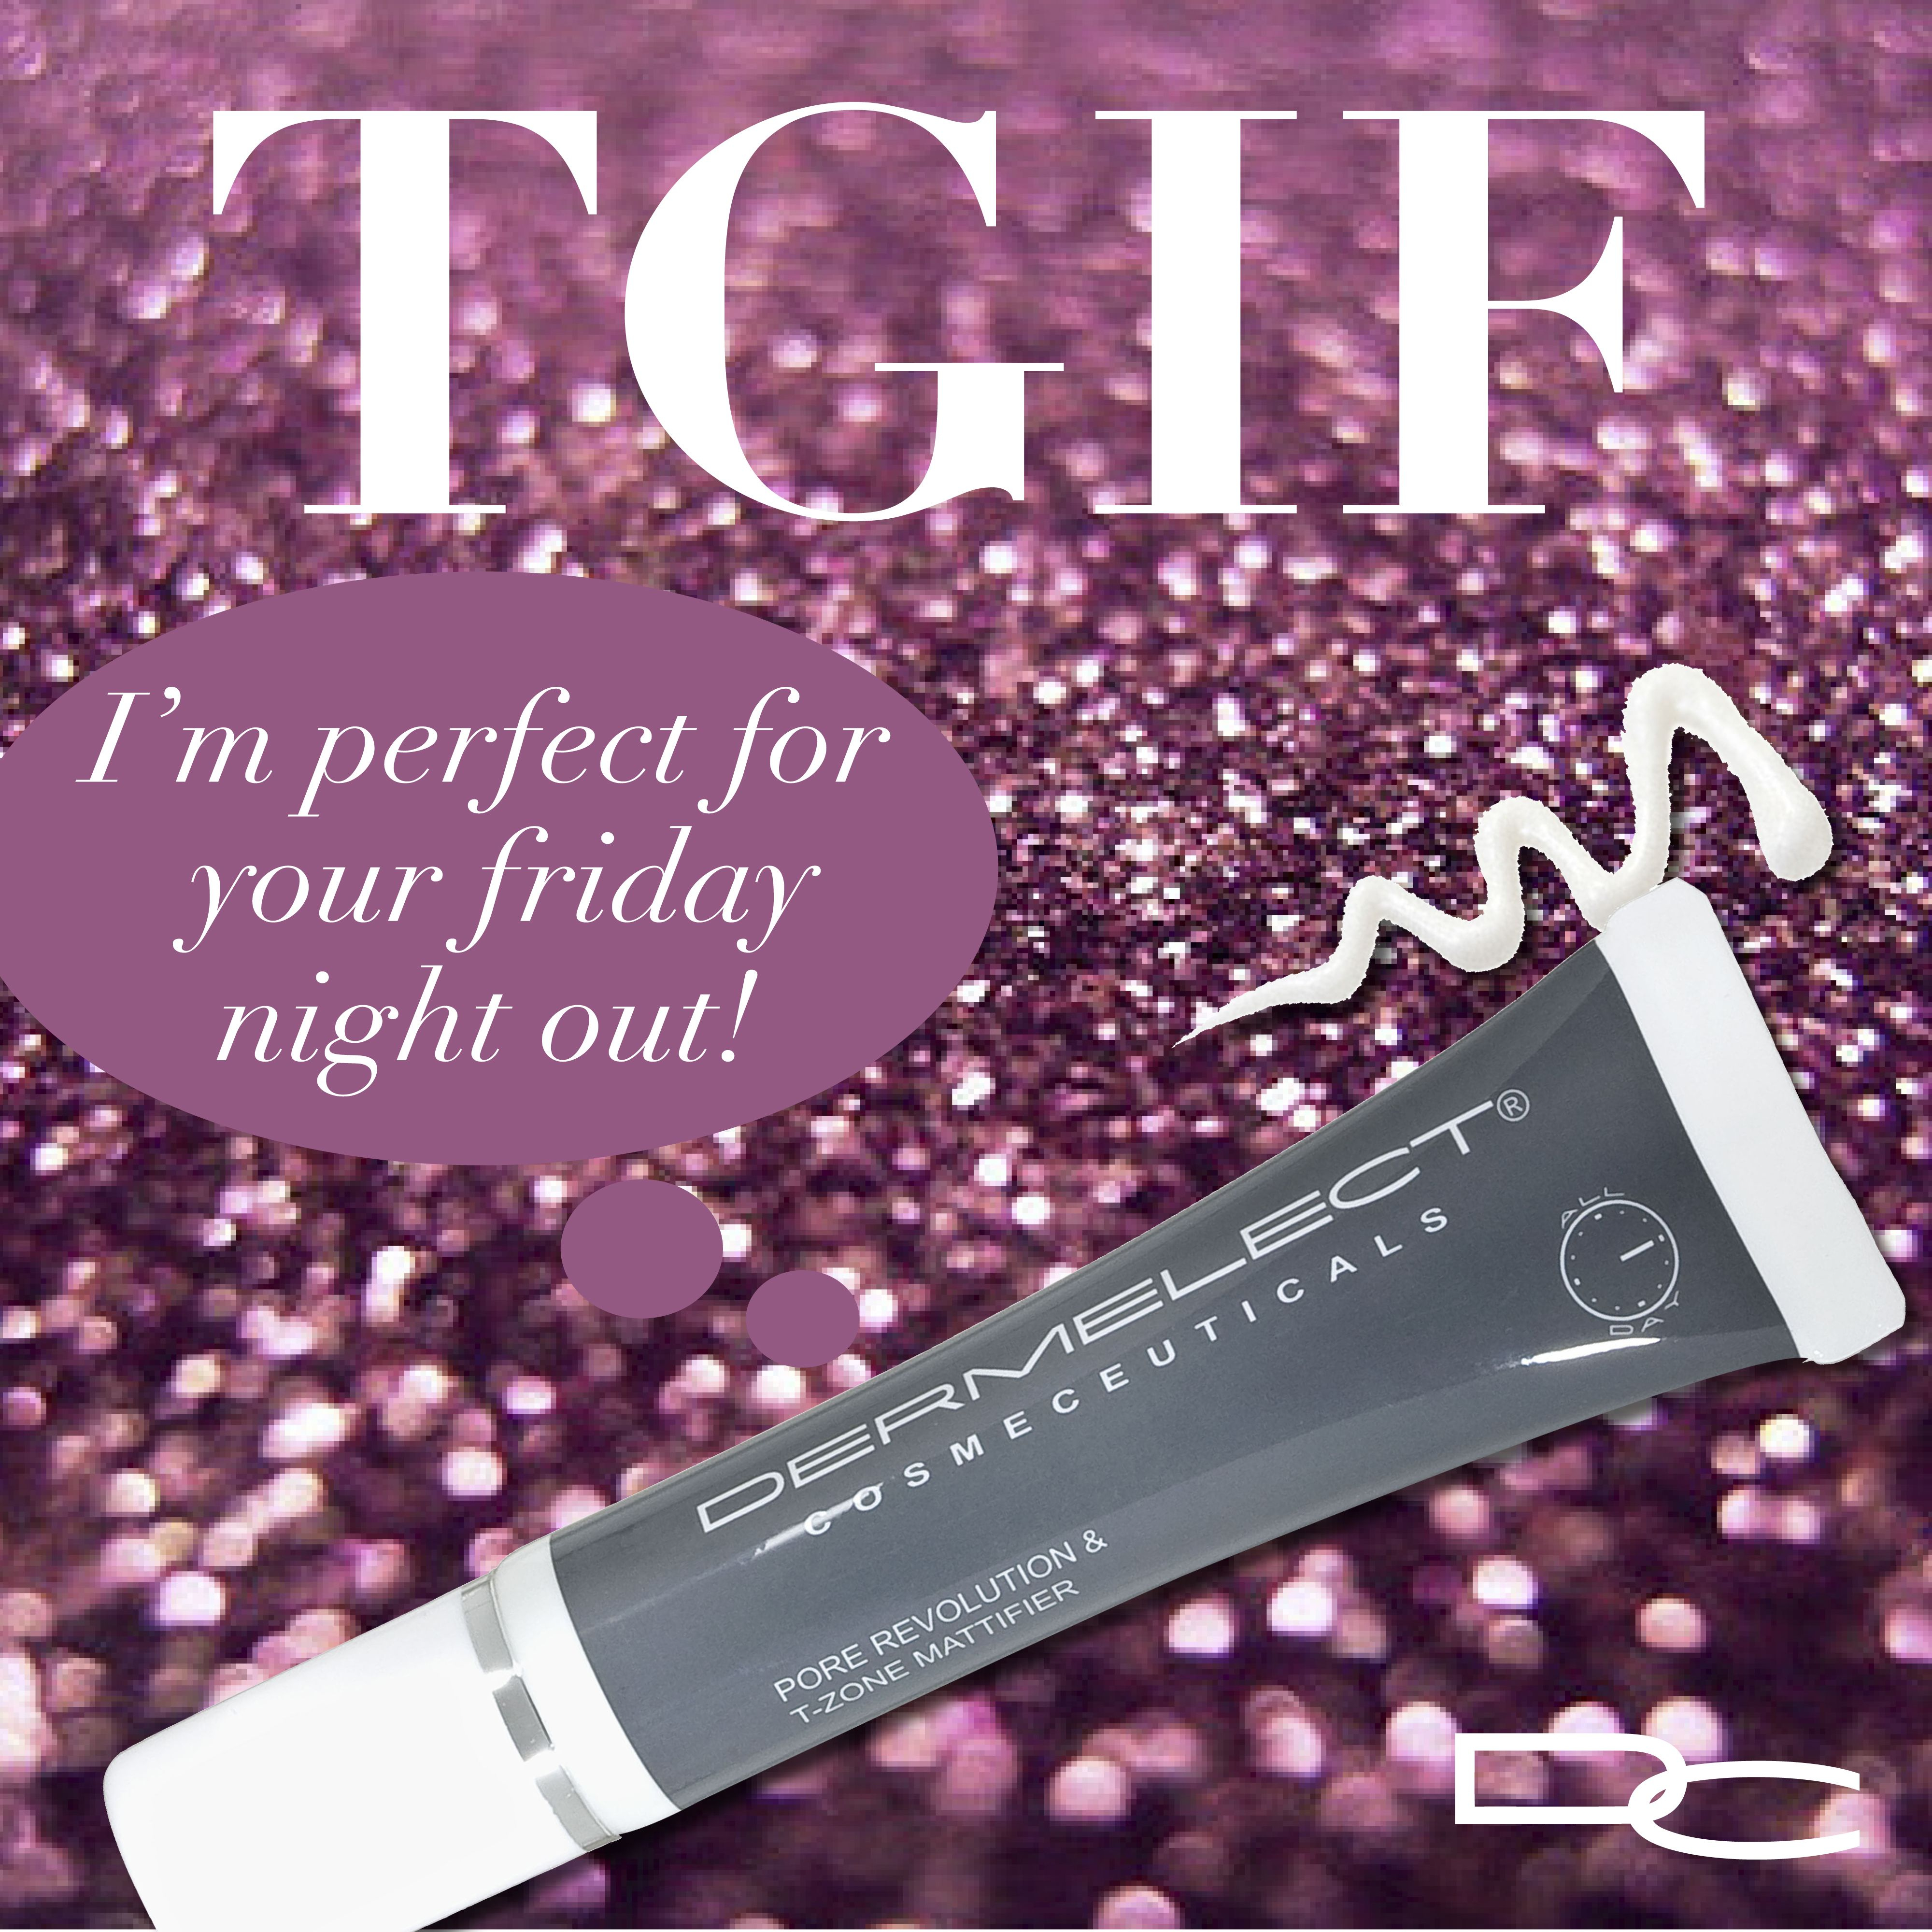 A perfect FNO (Friday Night Out) beauty tip: Pore Revolution & T-Zone Mattifier instantly mattifies shine, masks a breakout and clarifies large, black pores. Just drop it in your purse and go!